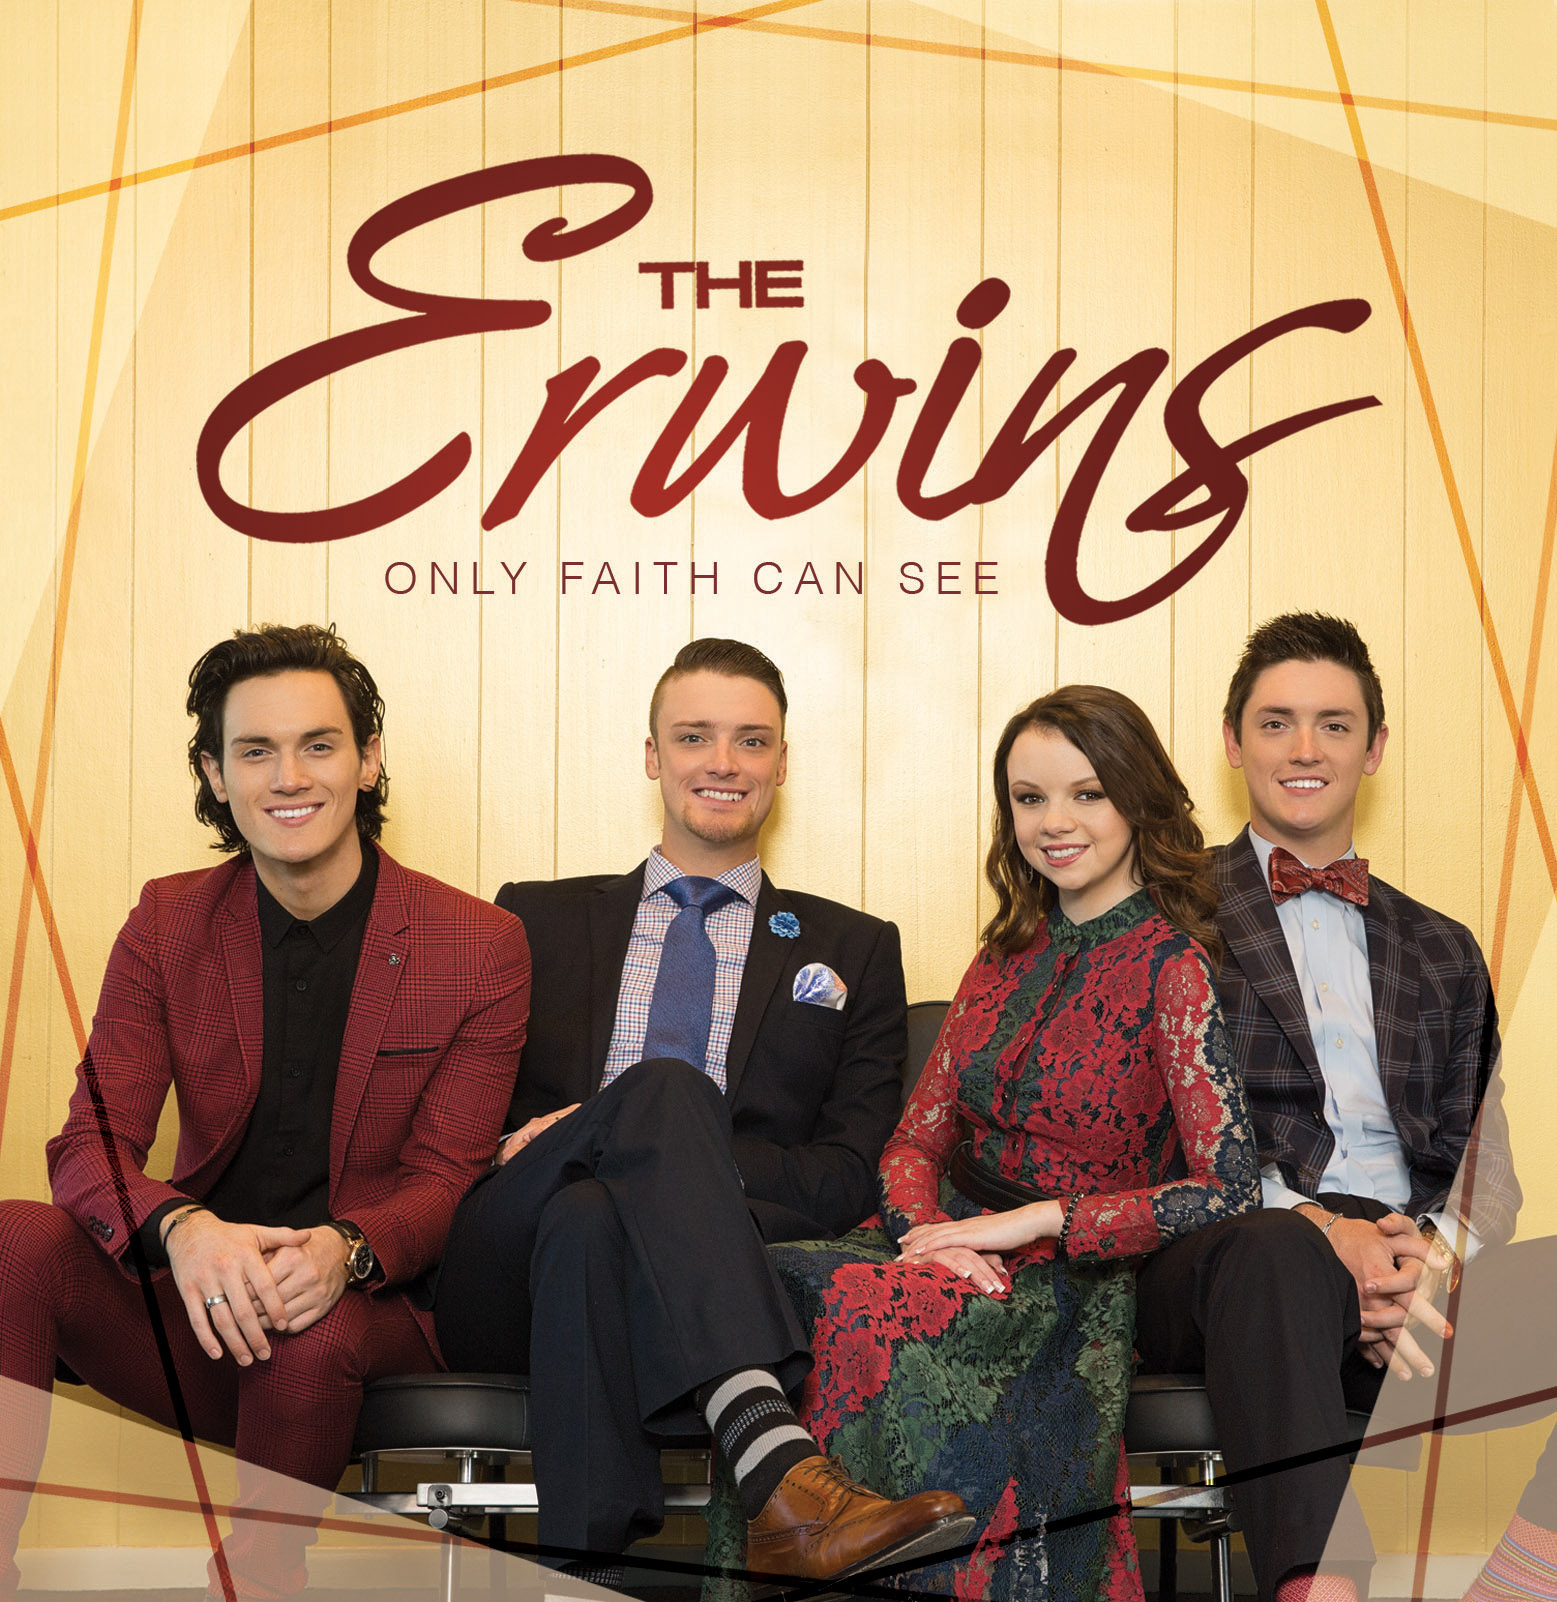 The Erwins release their second Stowtown Records project, Only Faith Can See